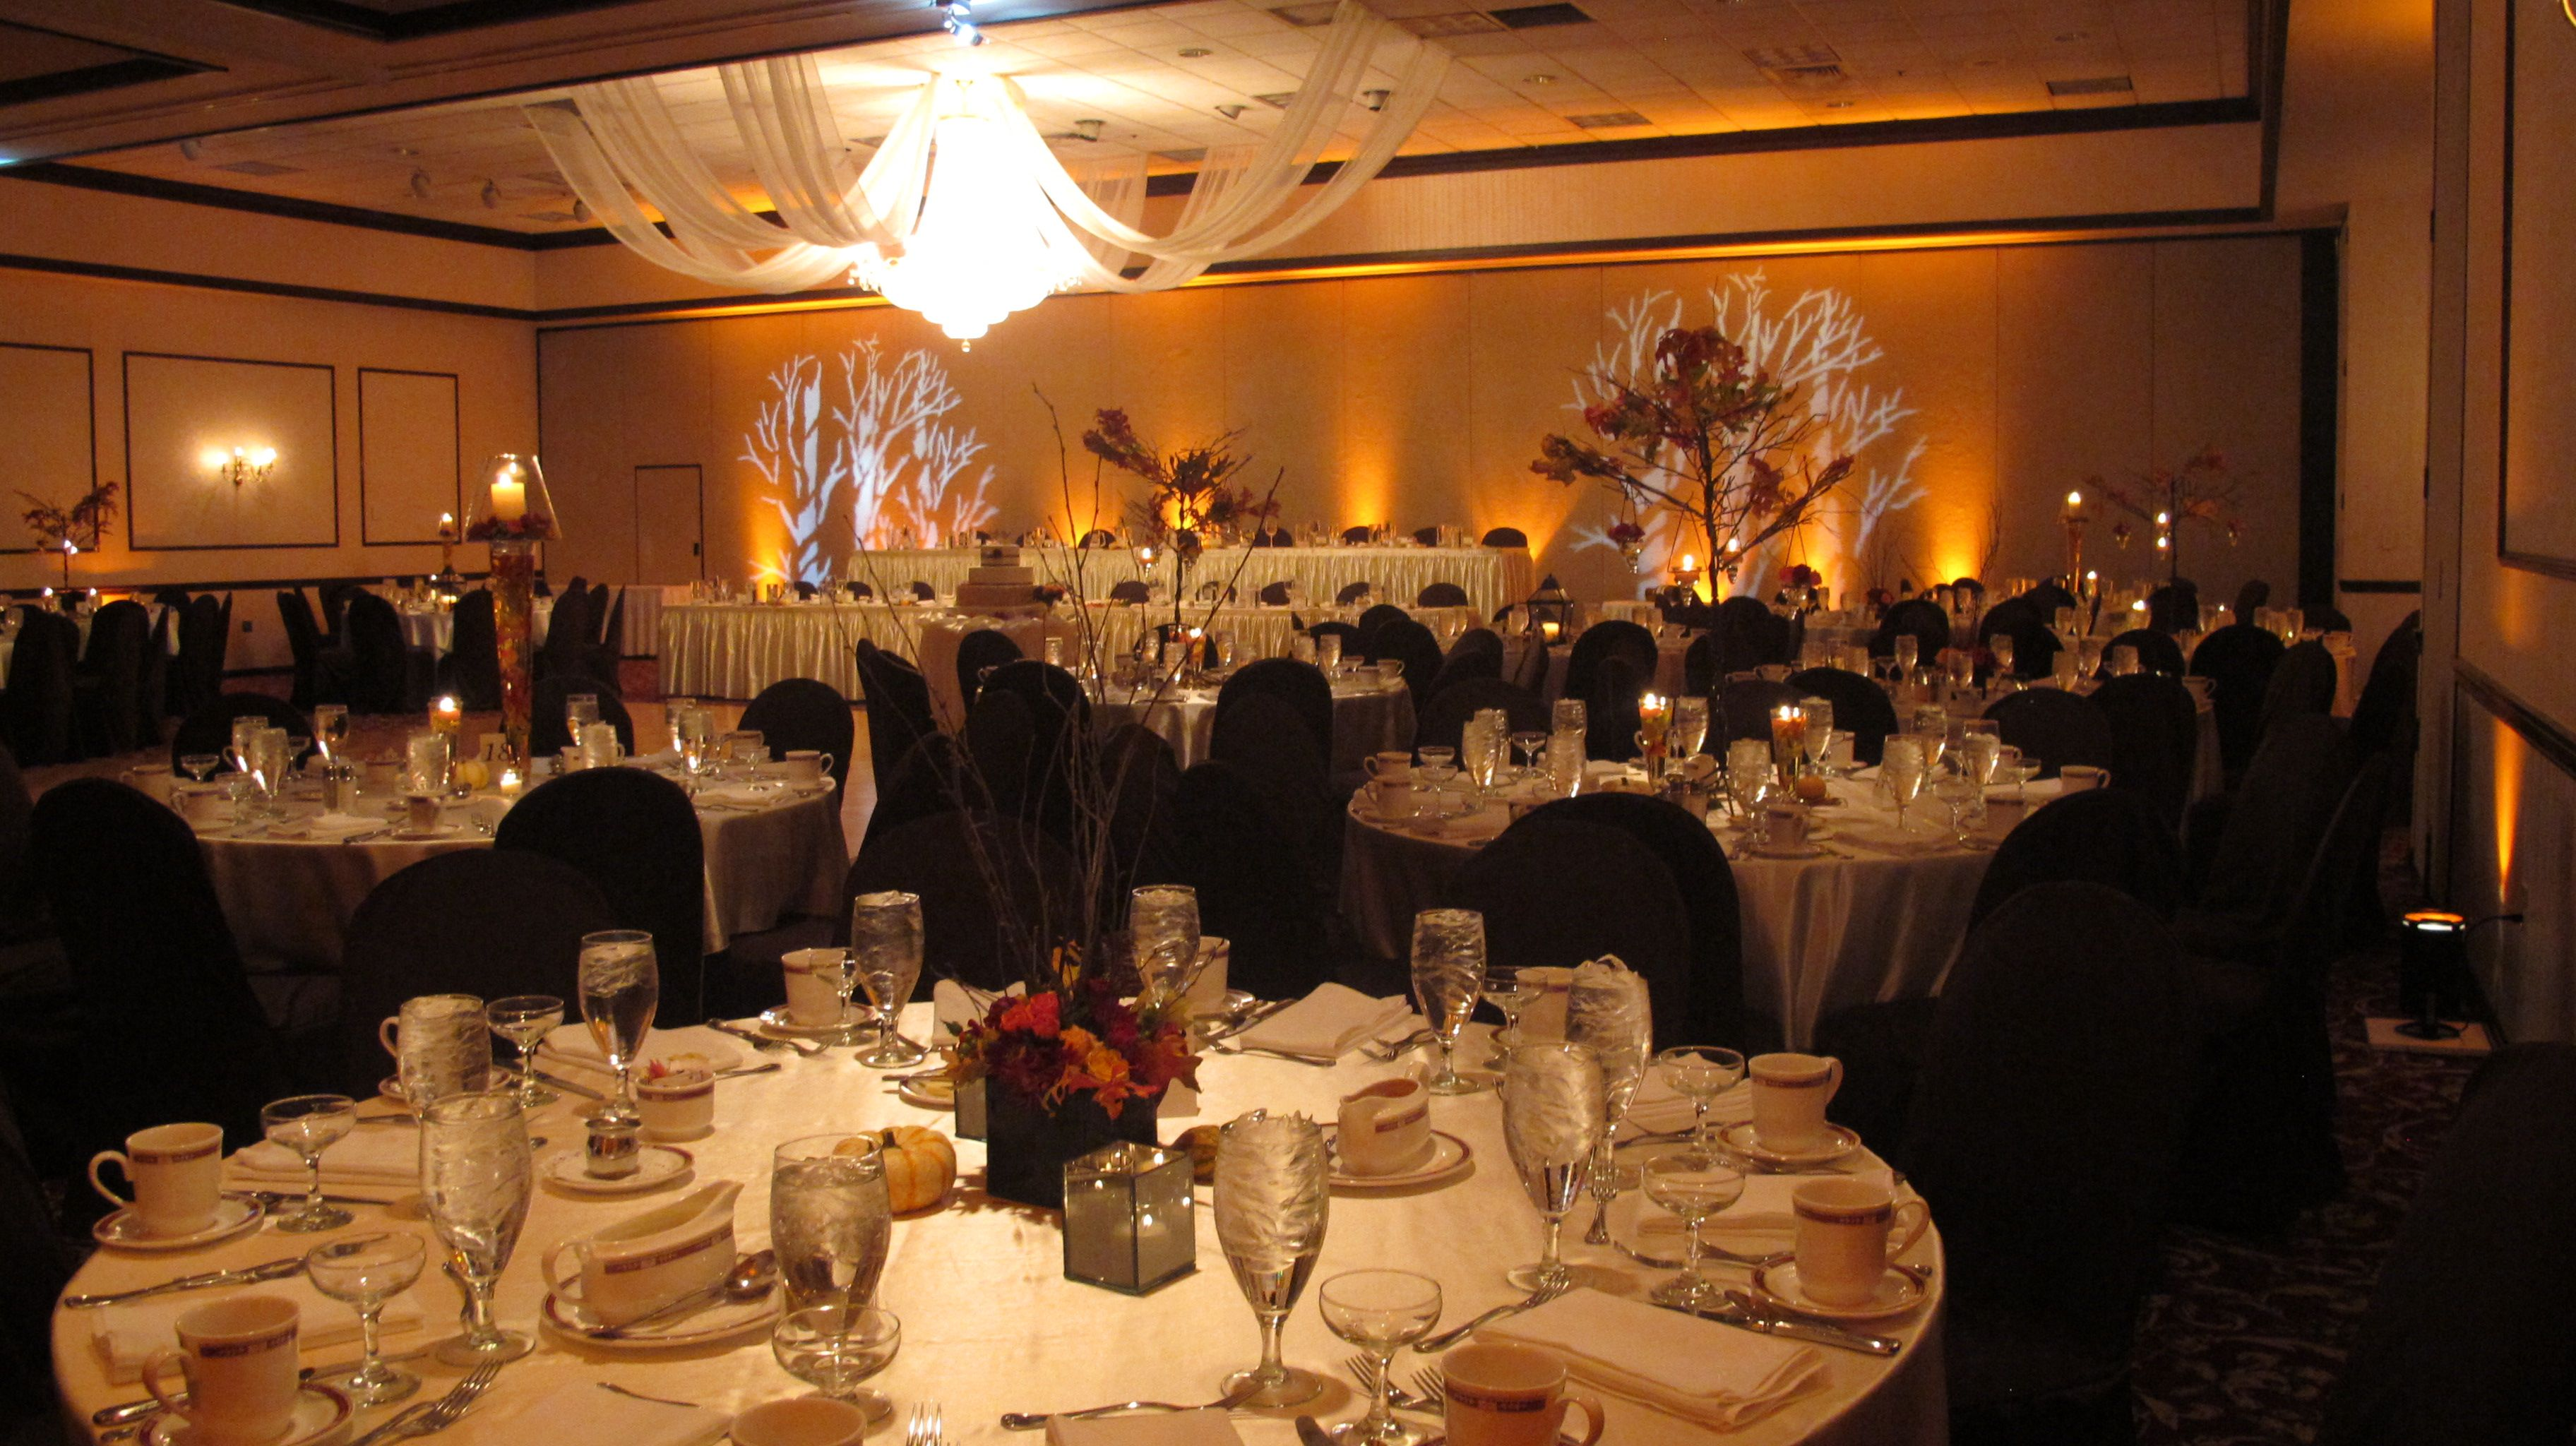 Wedding and reception venues in dayton ohio